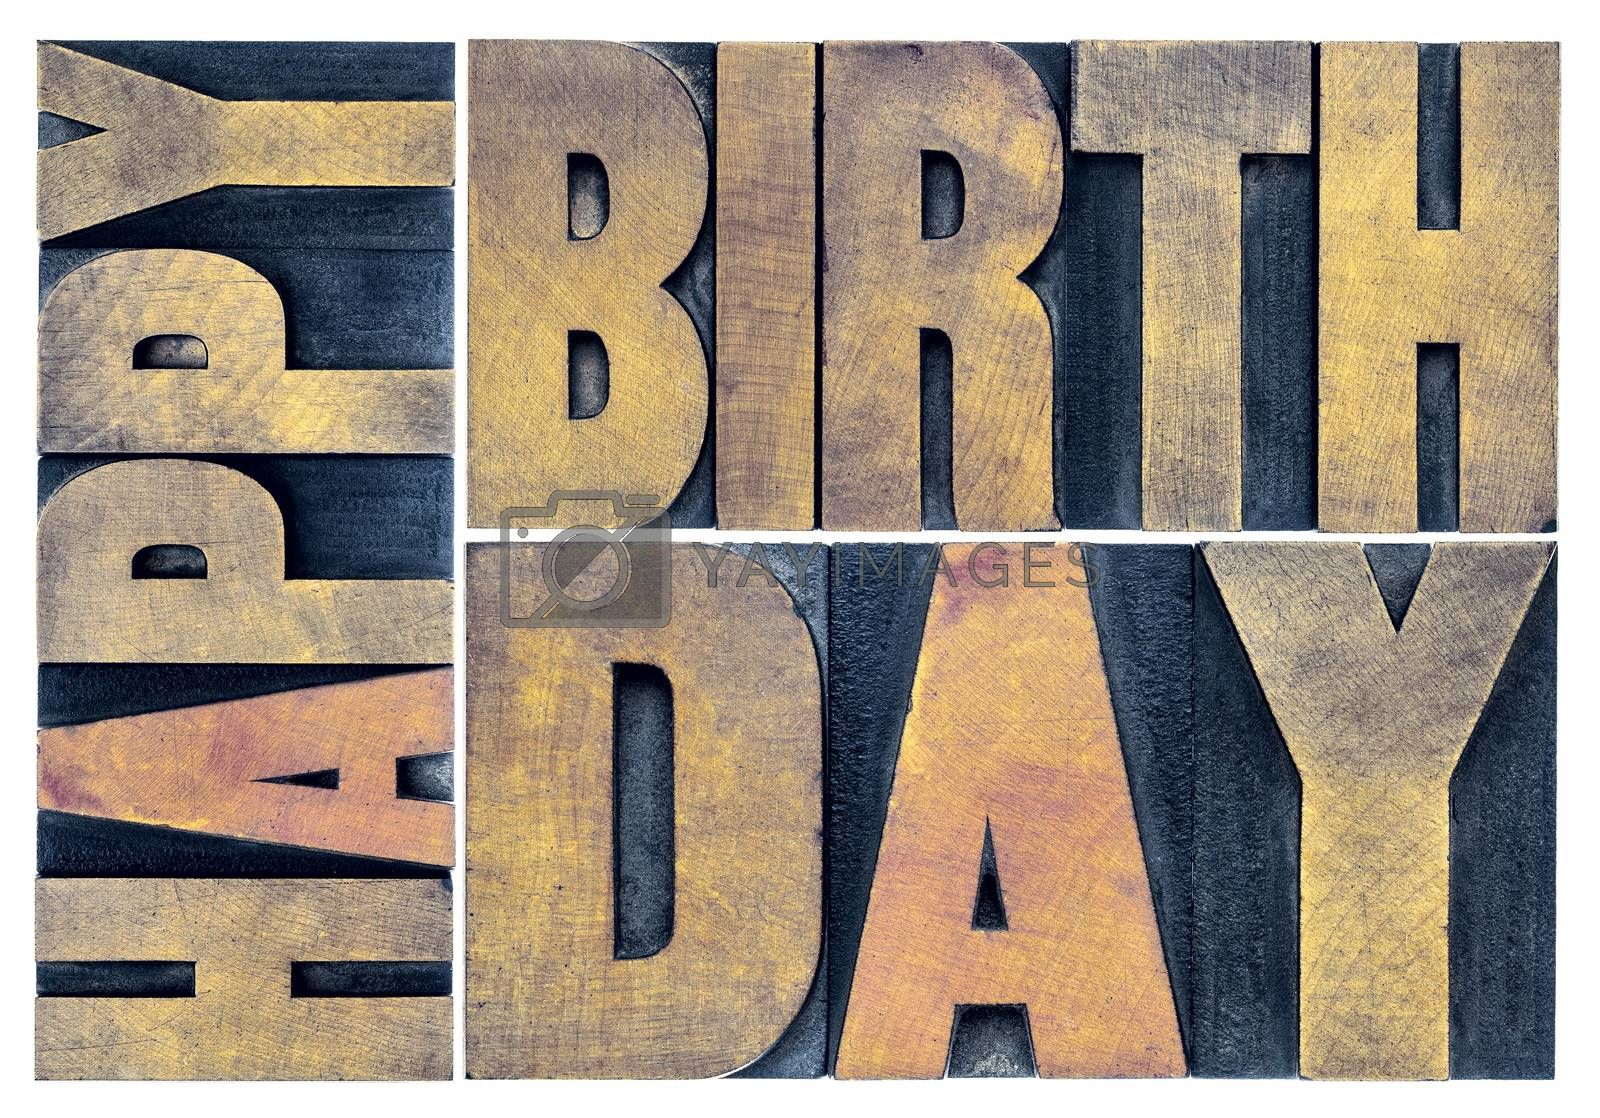 happy birthday greetings card - isolated text abstract - letterpress wood type printing blocks scaled to a rectangle